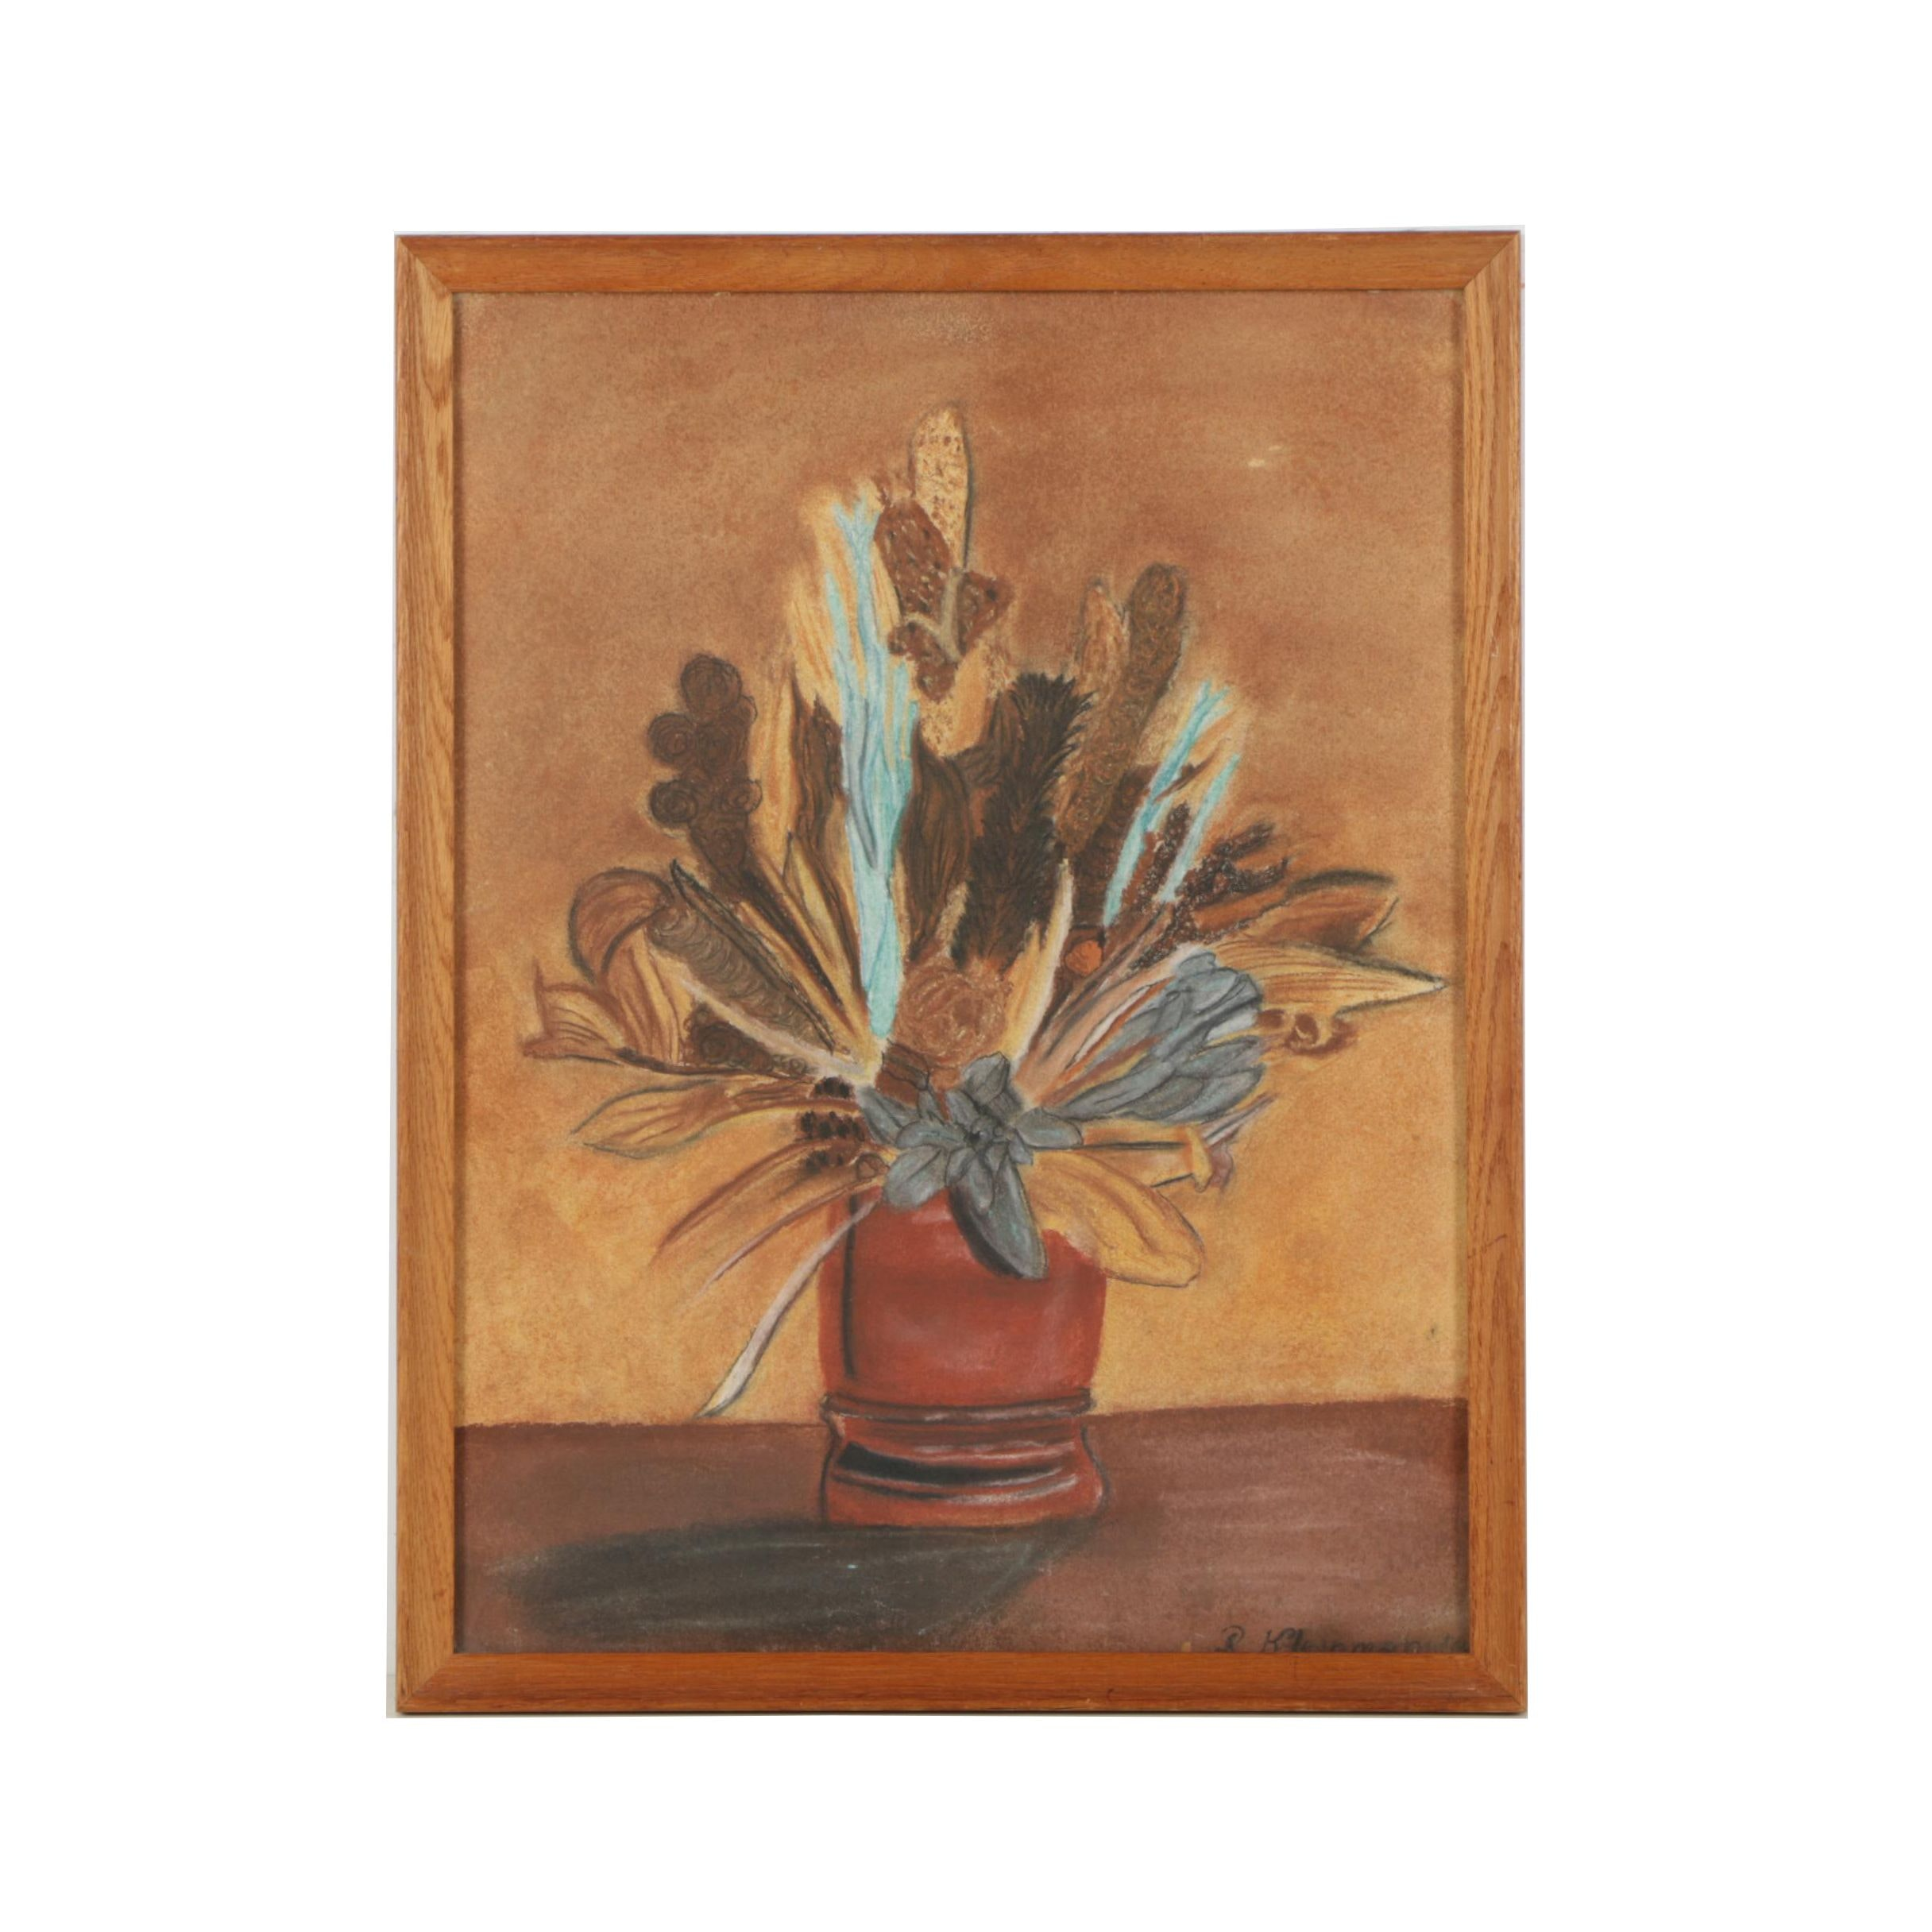 R. Kleinman Pastel Drawing of Potted Plant